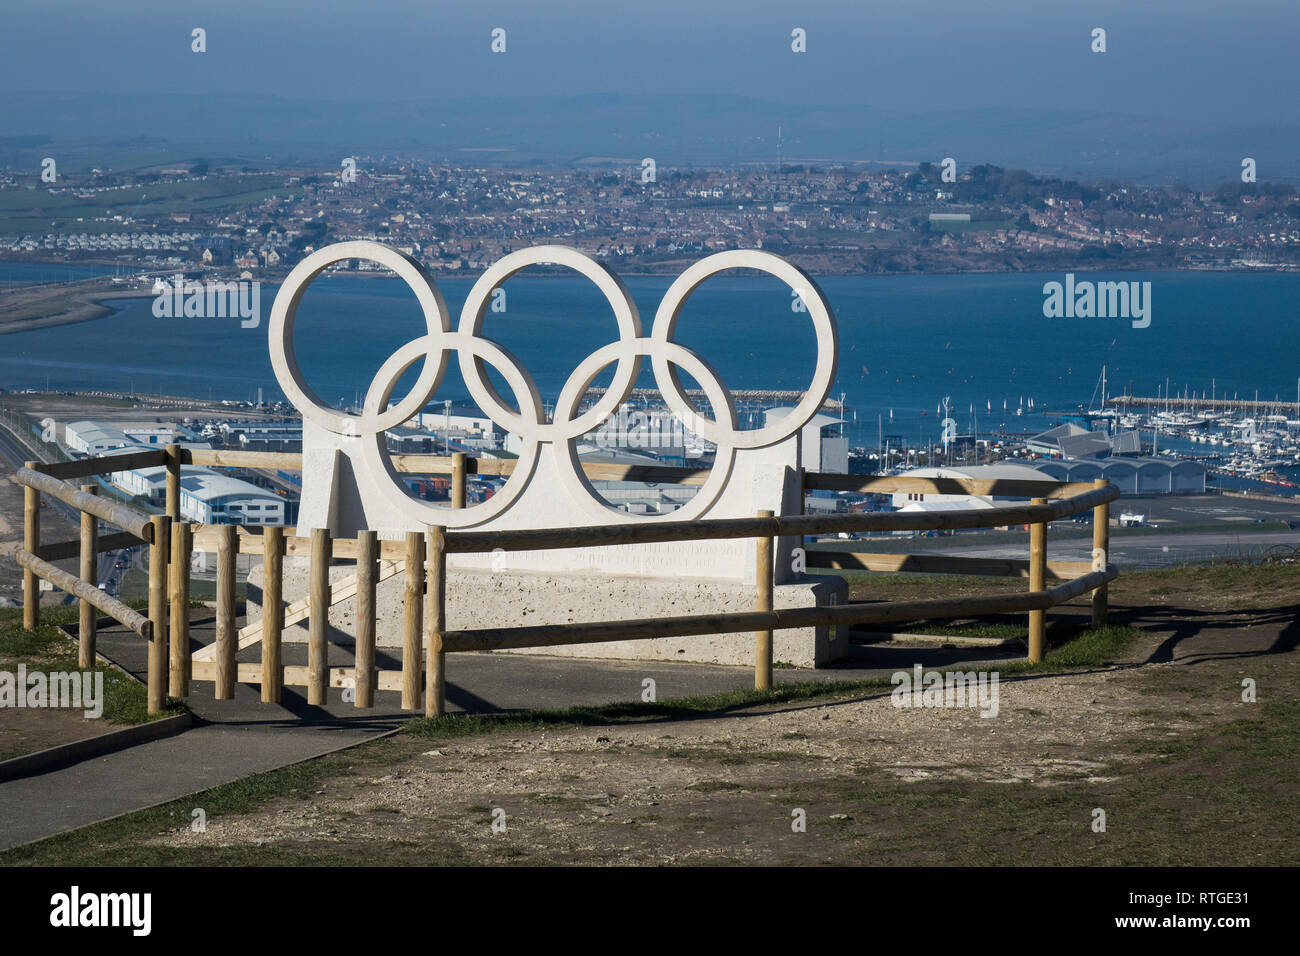 England, Dorset, Portland harbour, Olympic rings at site of sailing venue for the 2012 London games - Stock Image